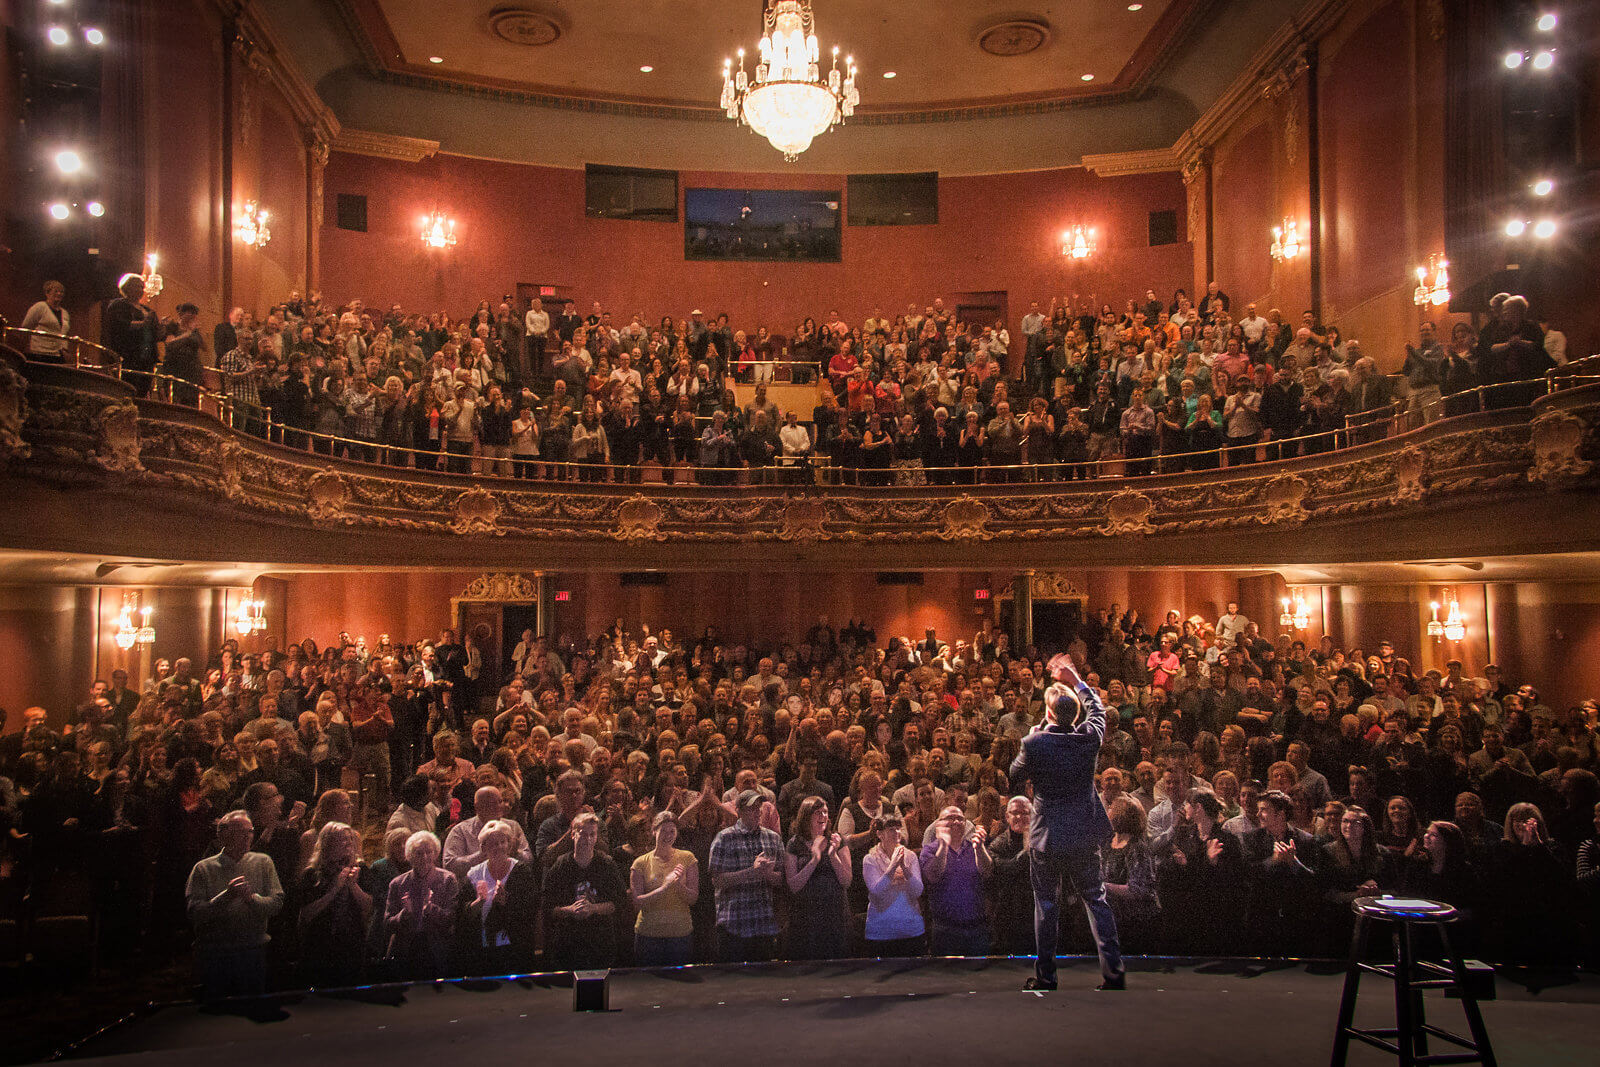 Live at Imperial Theatre